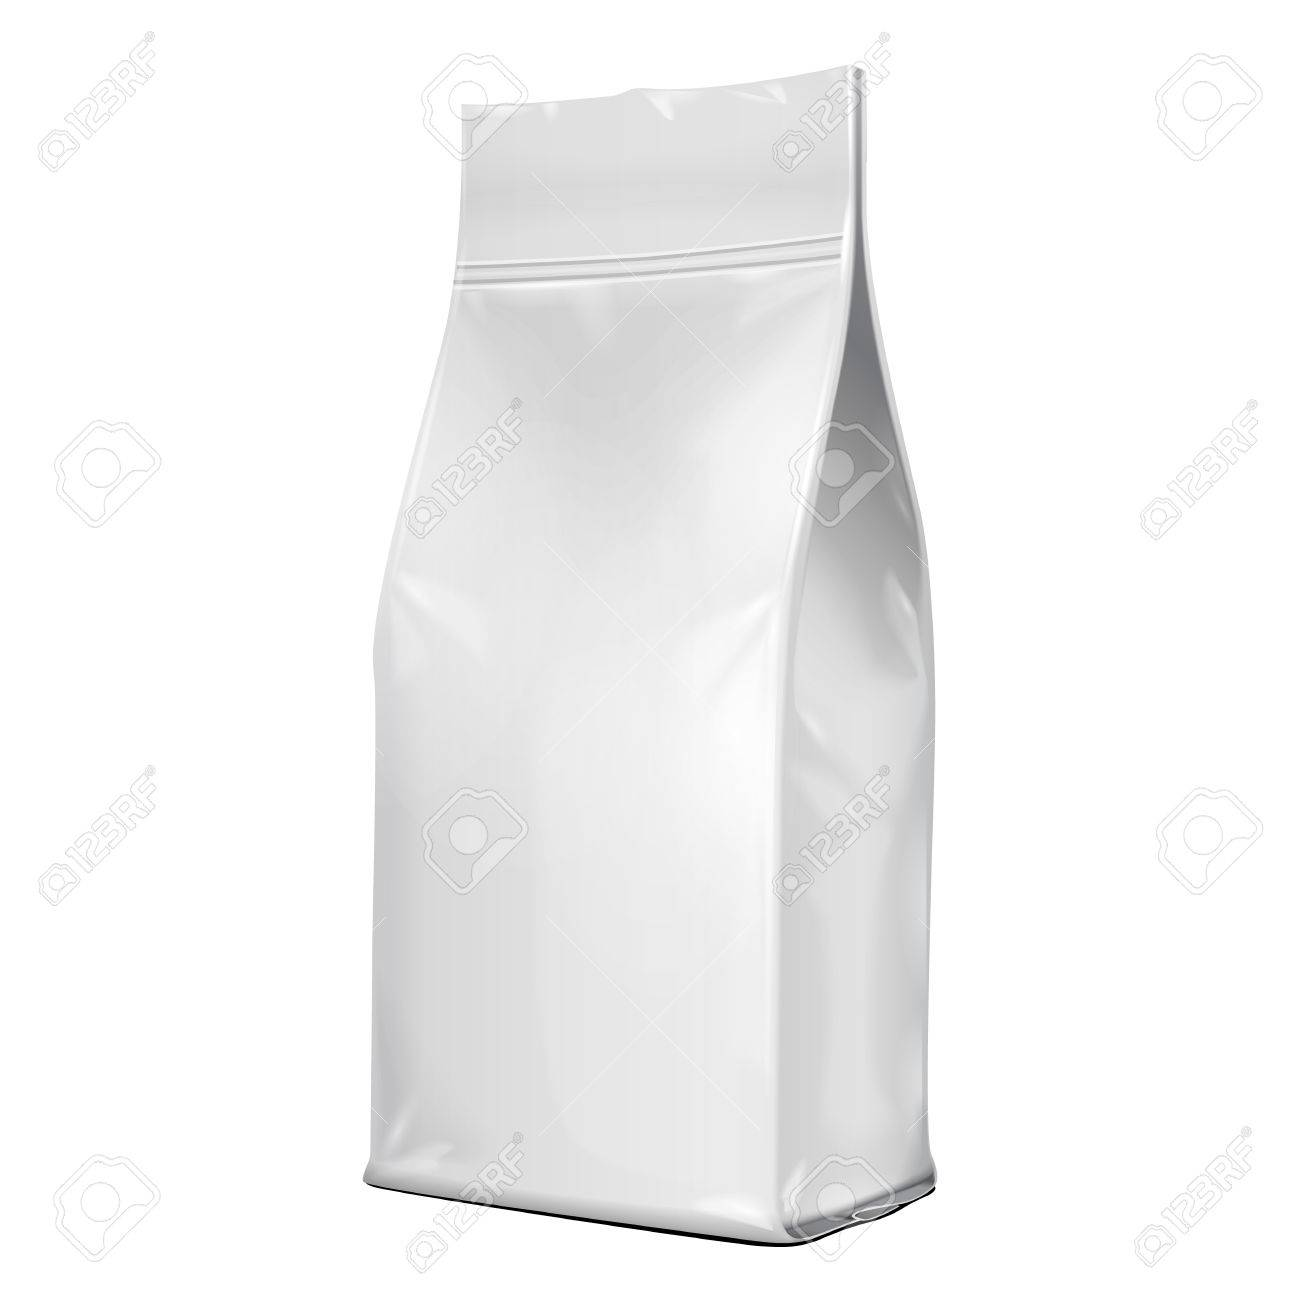 Foil Paper Food Bag Package Of Coffee, Salt, Sugar, Pepper, Spices Or Flour, Folded, Grayscale. On White Background Isolated. Mock Up Template Ready For Your Design. Product Packing Vector - 57794929